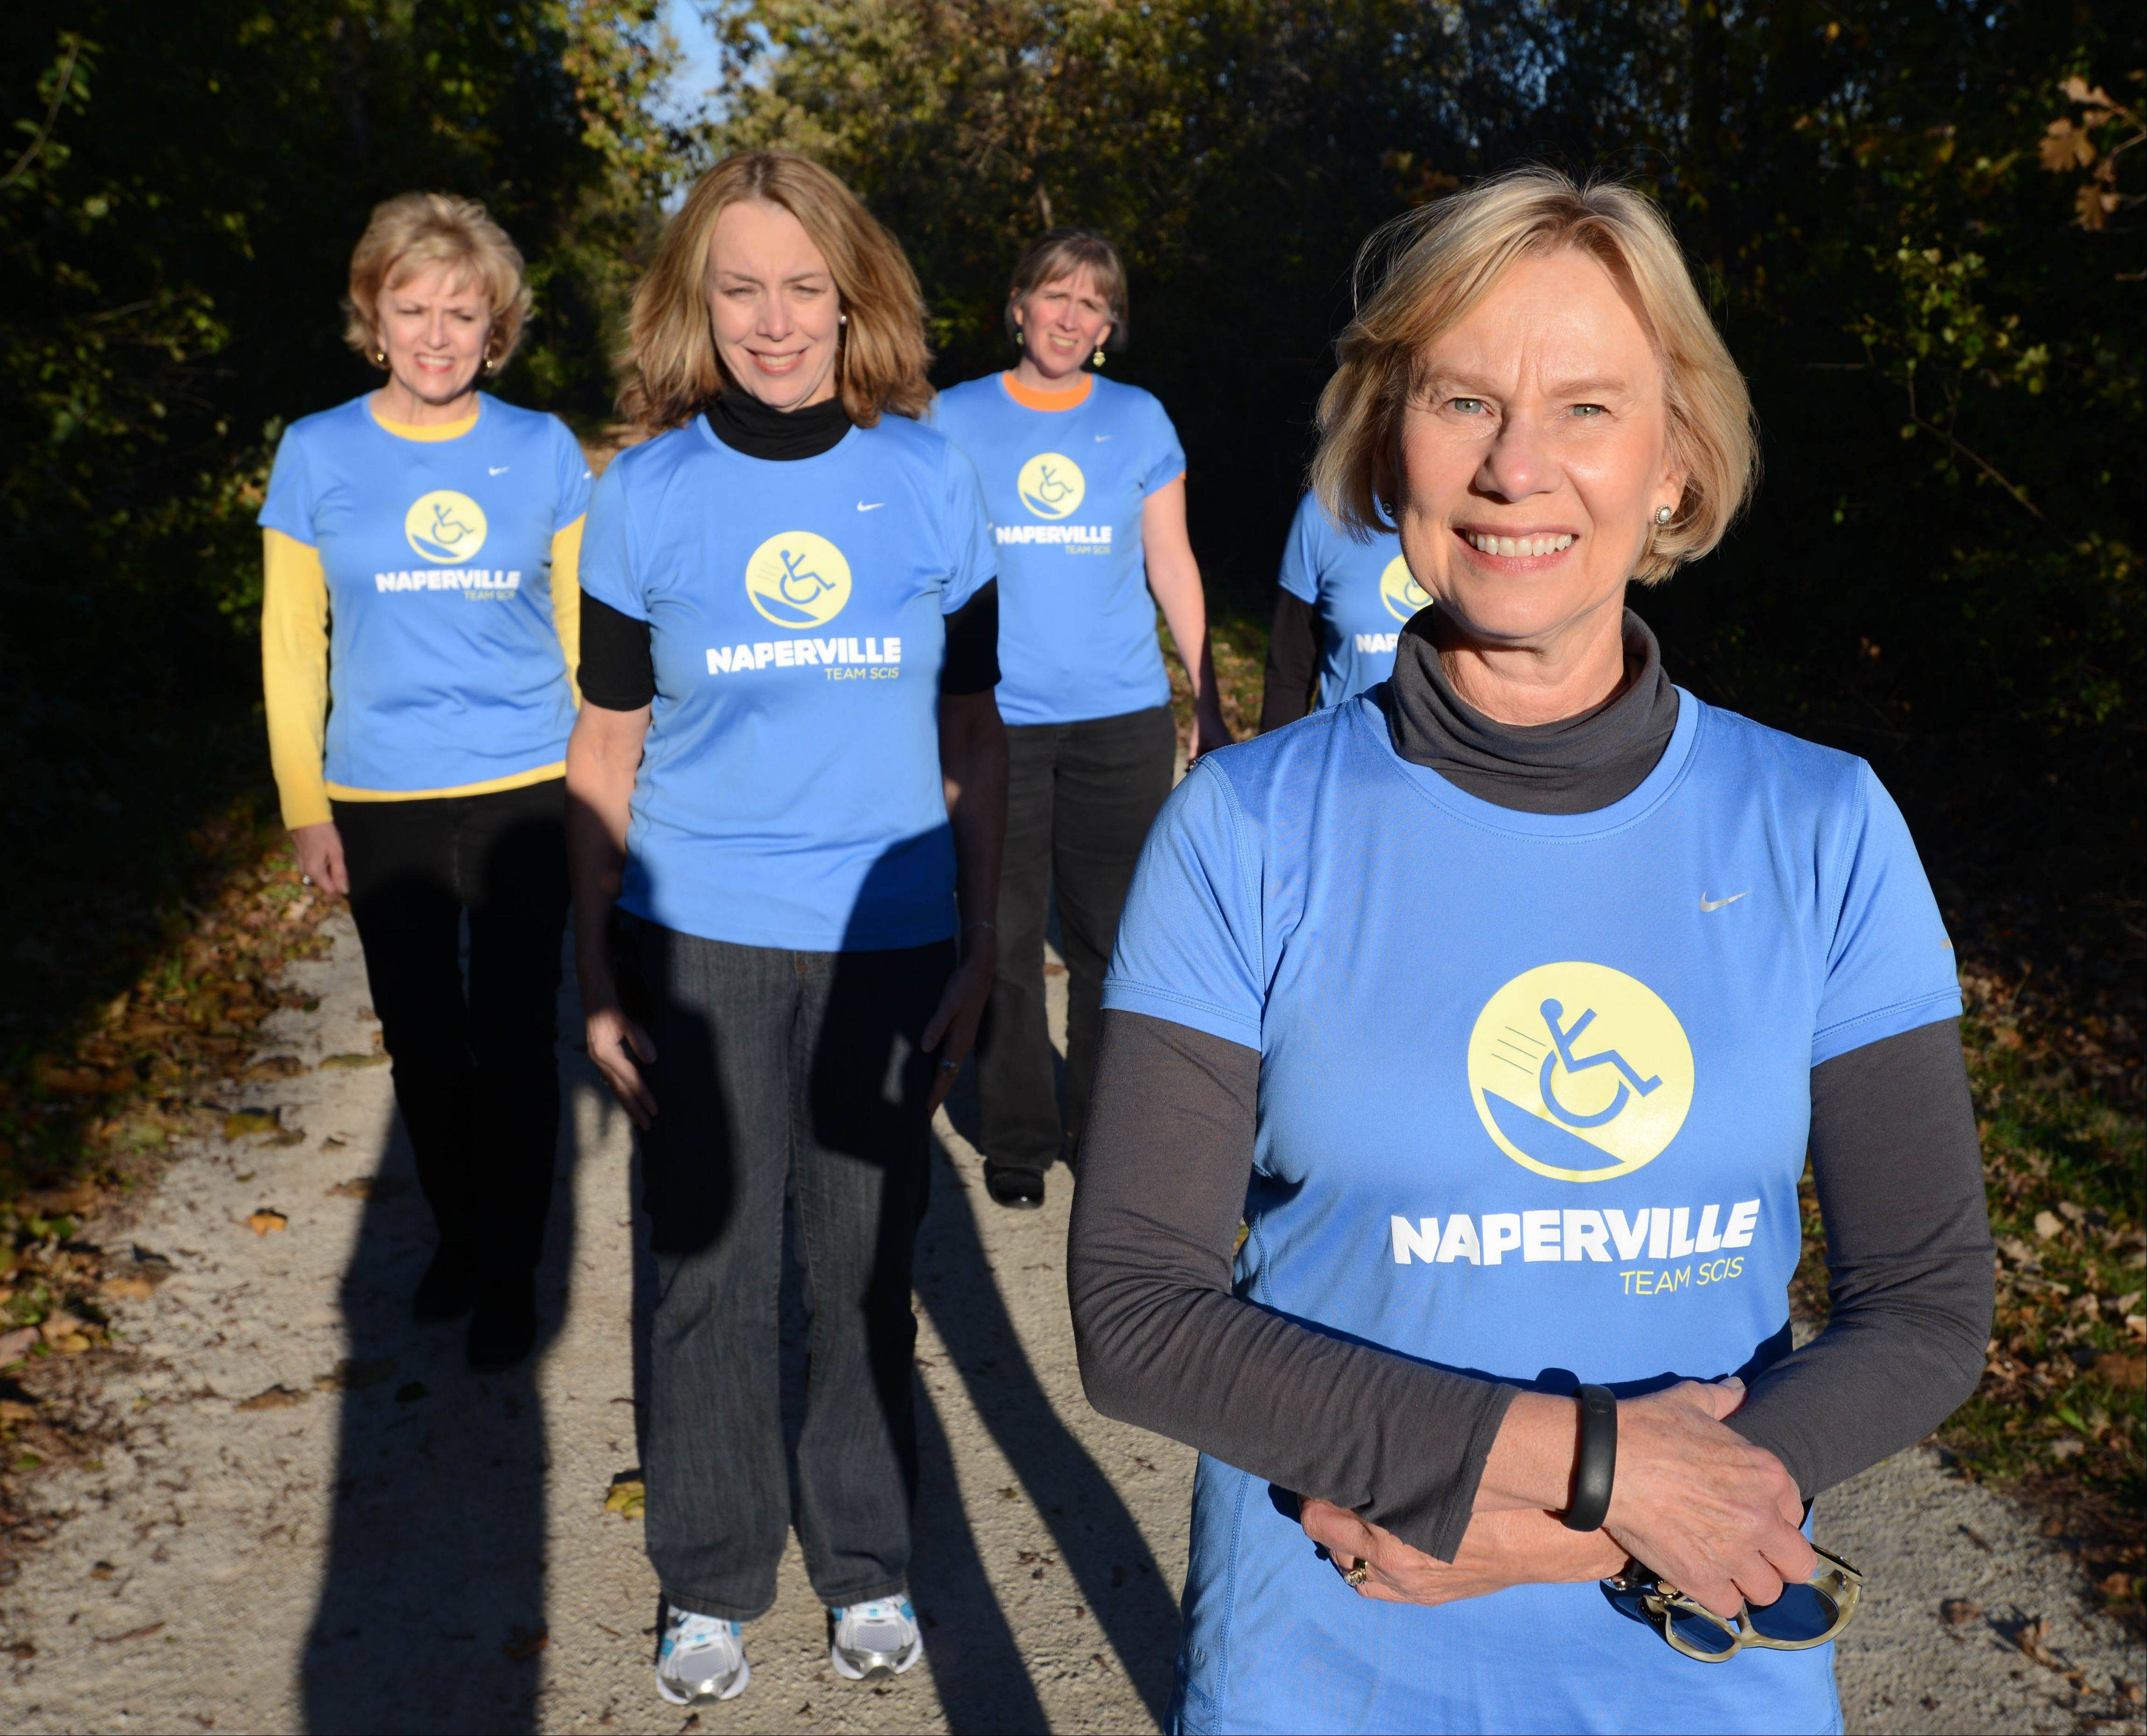 Ginni Kent of Glen Ellyn gathered a team of friends to compete as charity runners in the inaugural Edward Hospital Naperville Half Marathon on Sunday, Nov. 10, raising money for Spinal Cord Injury Sucks.